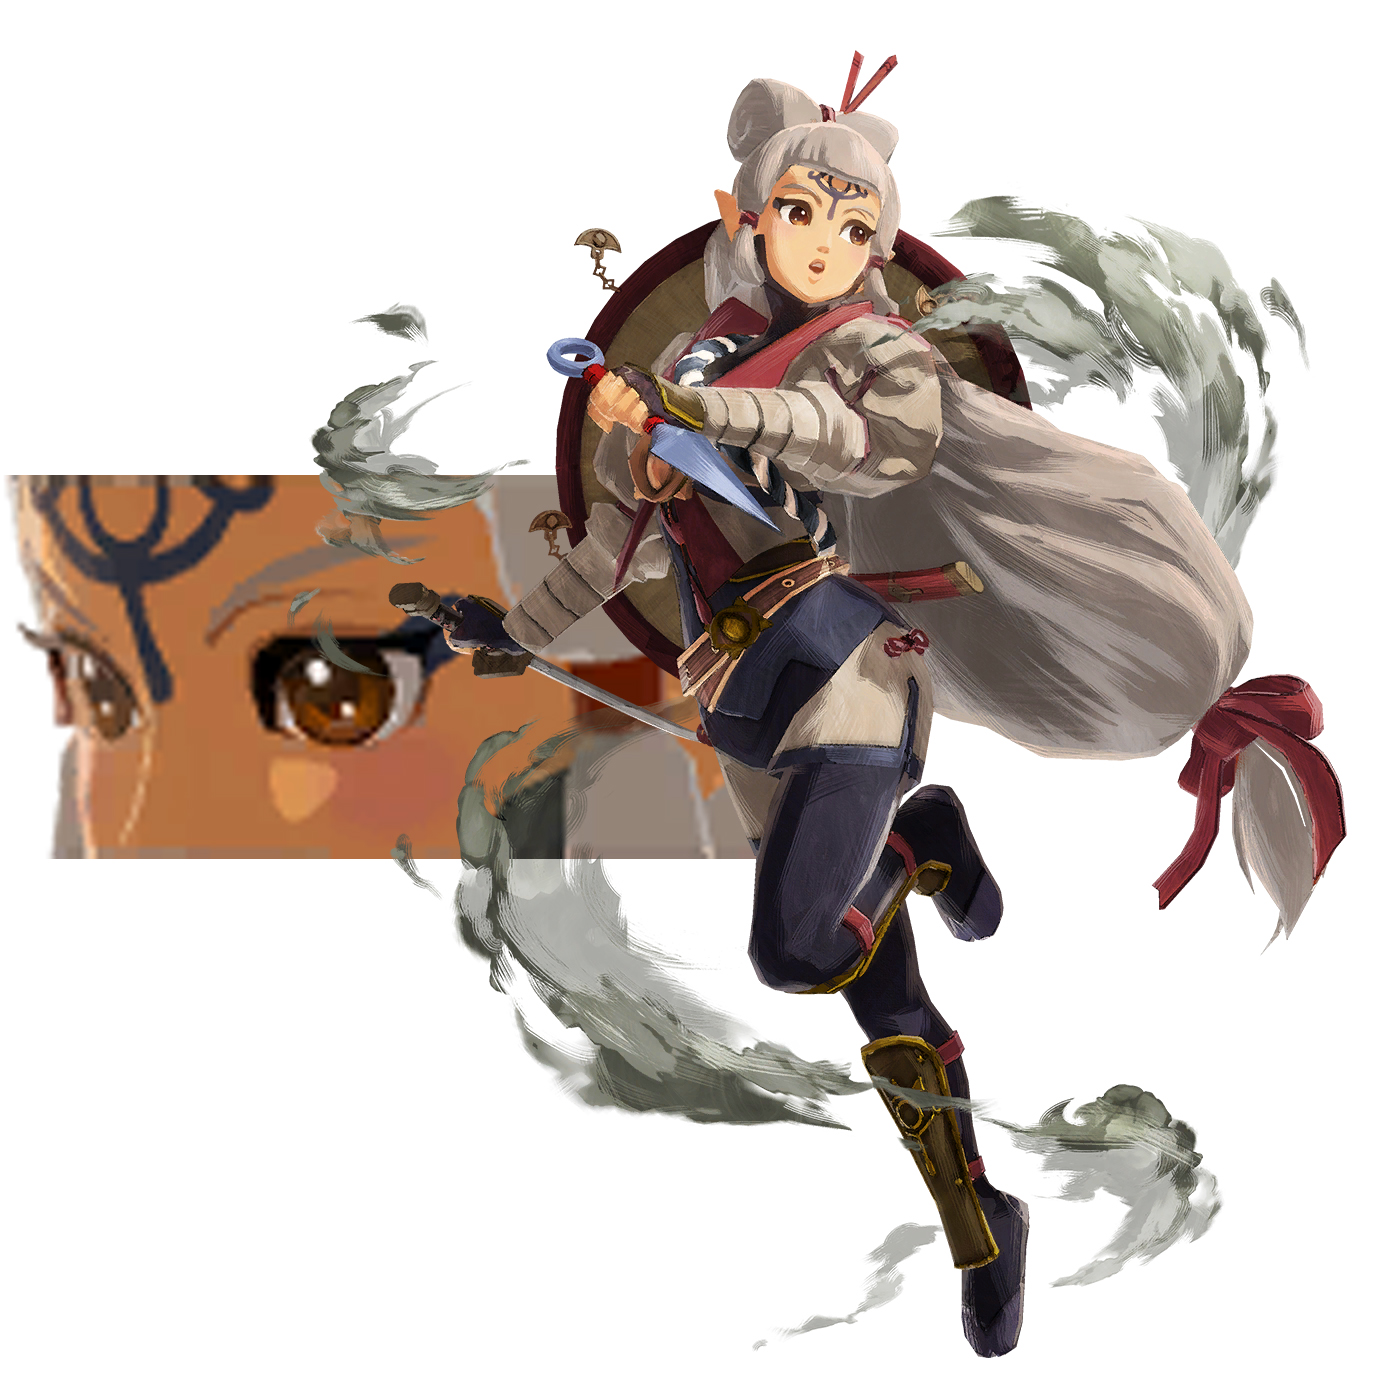 Hyrule Warriors: Age of Calamity — Impa